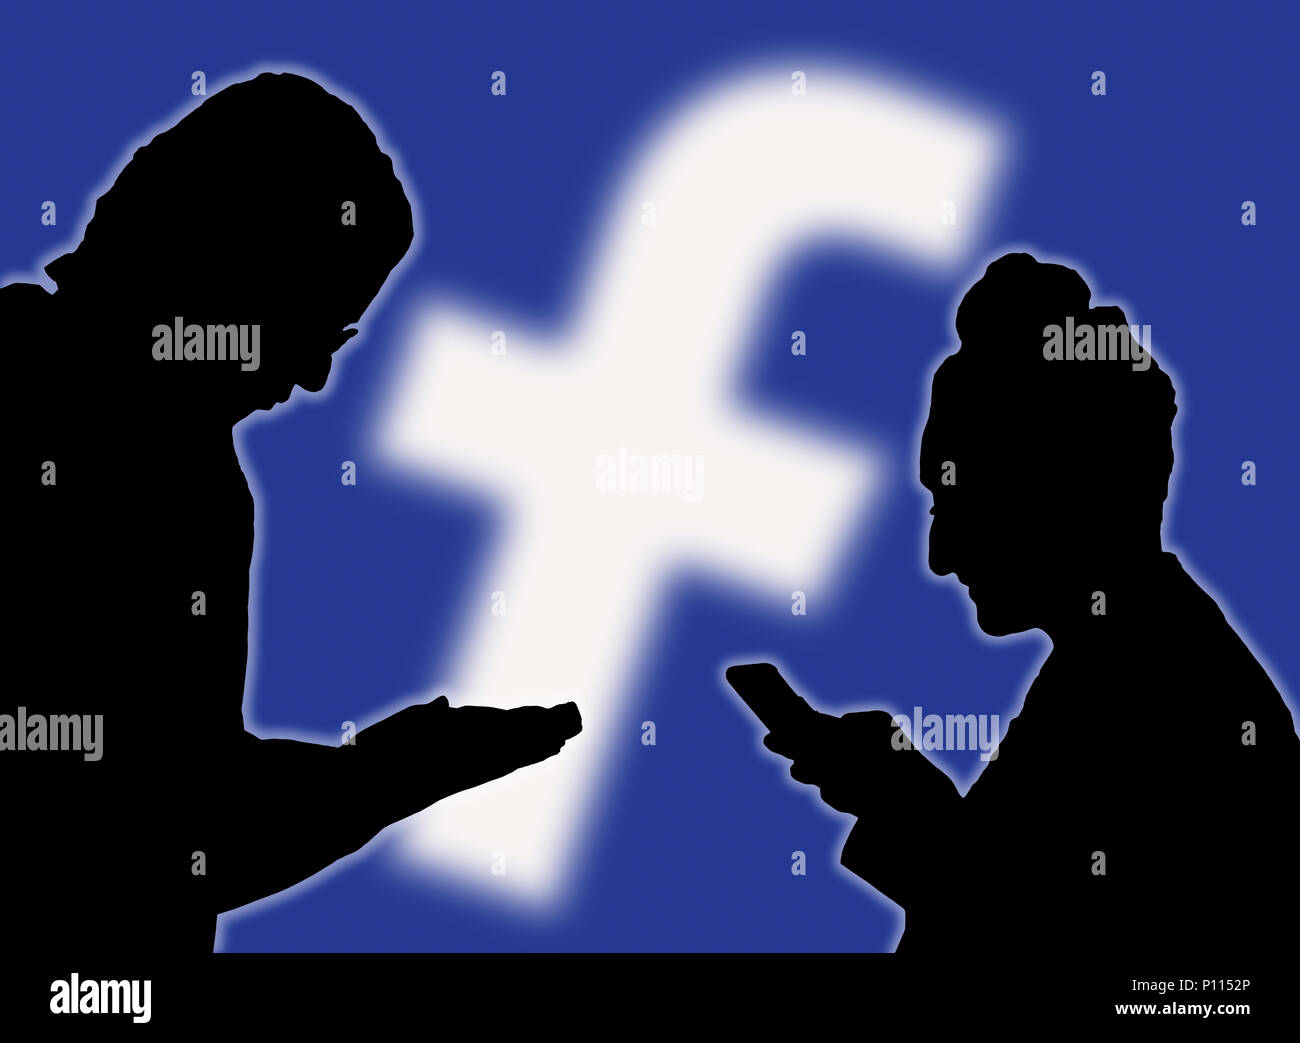 Silhouettes of a couple of people using the Facebook app on smartphones. Stock Photo